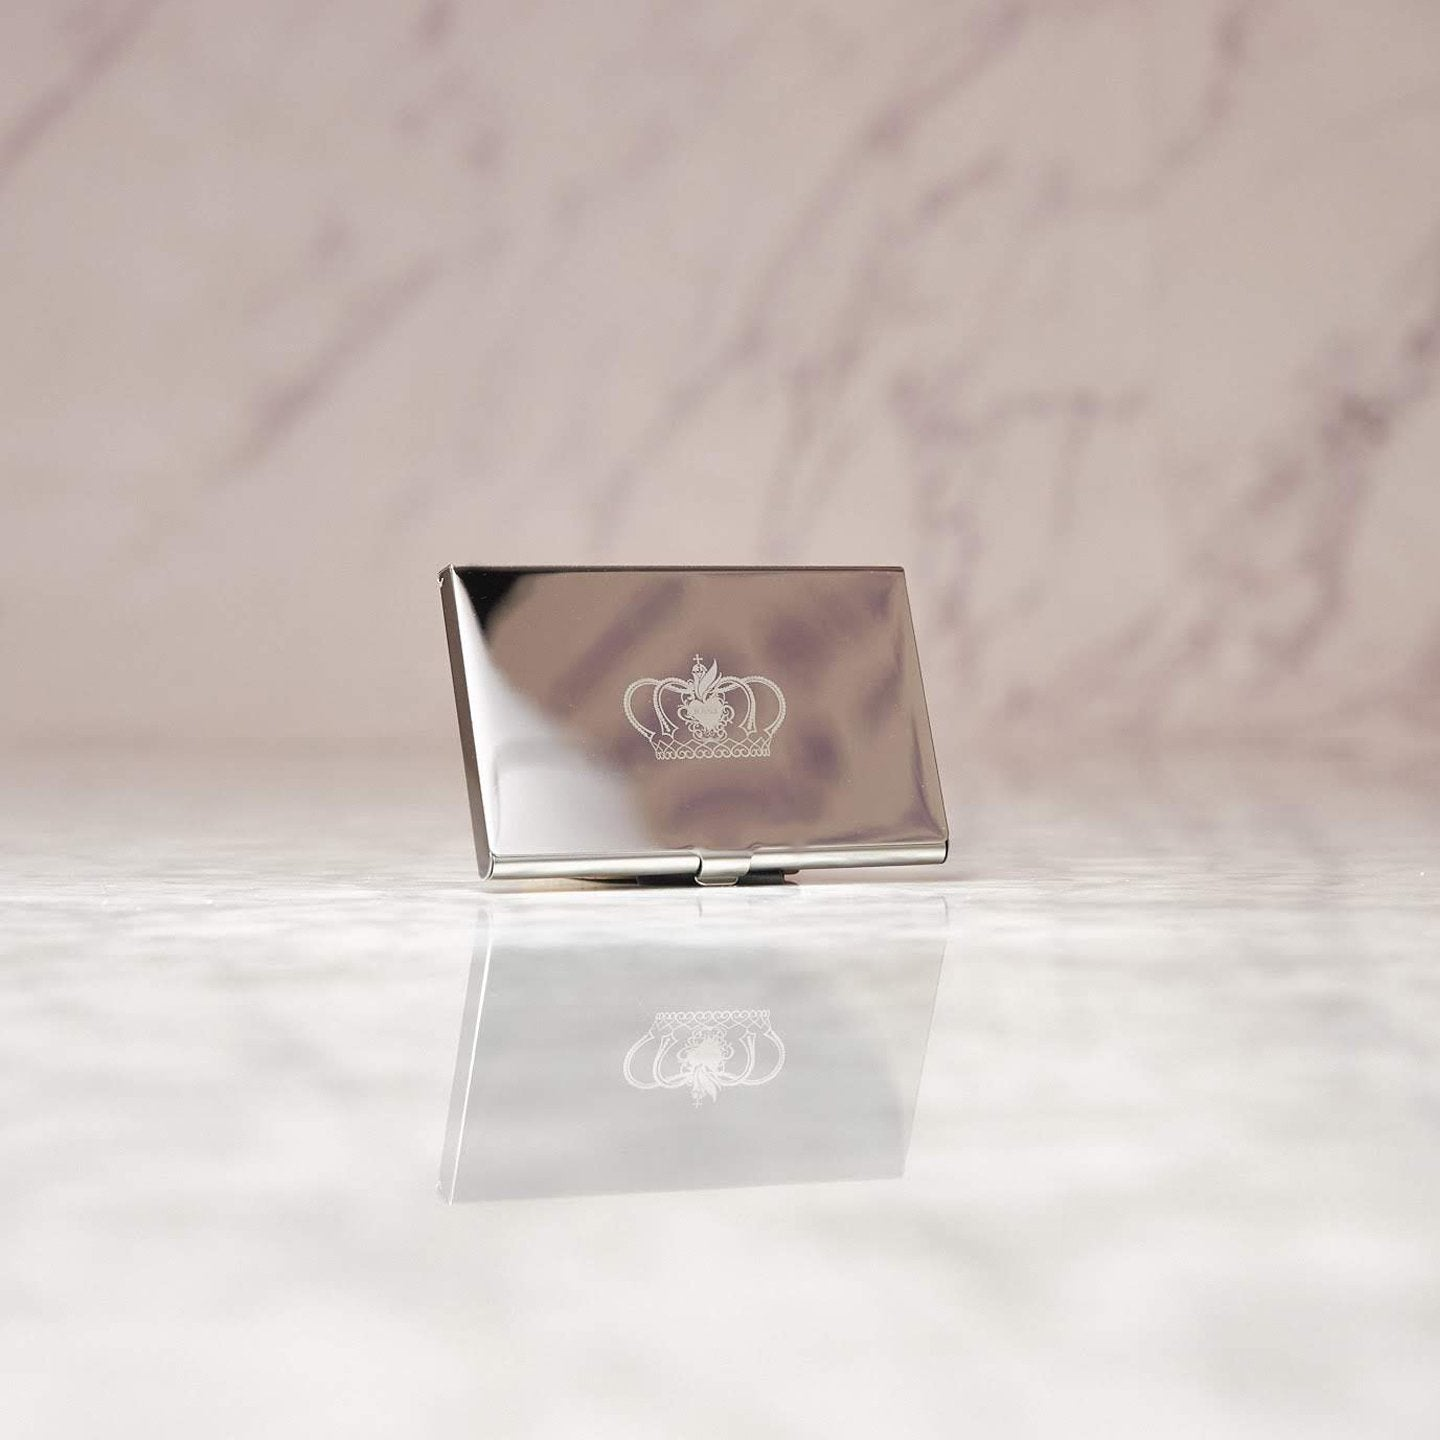 Pack of Blessings with Royals Stainless Steel Card Holder